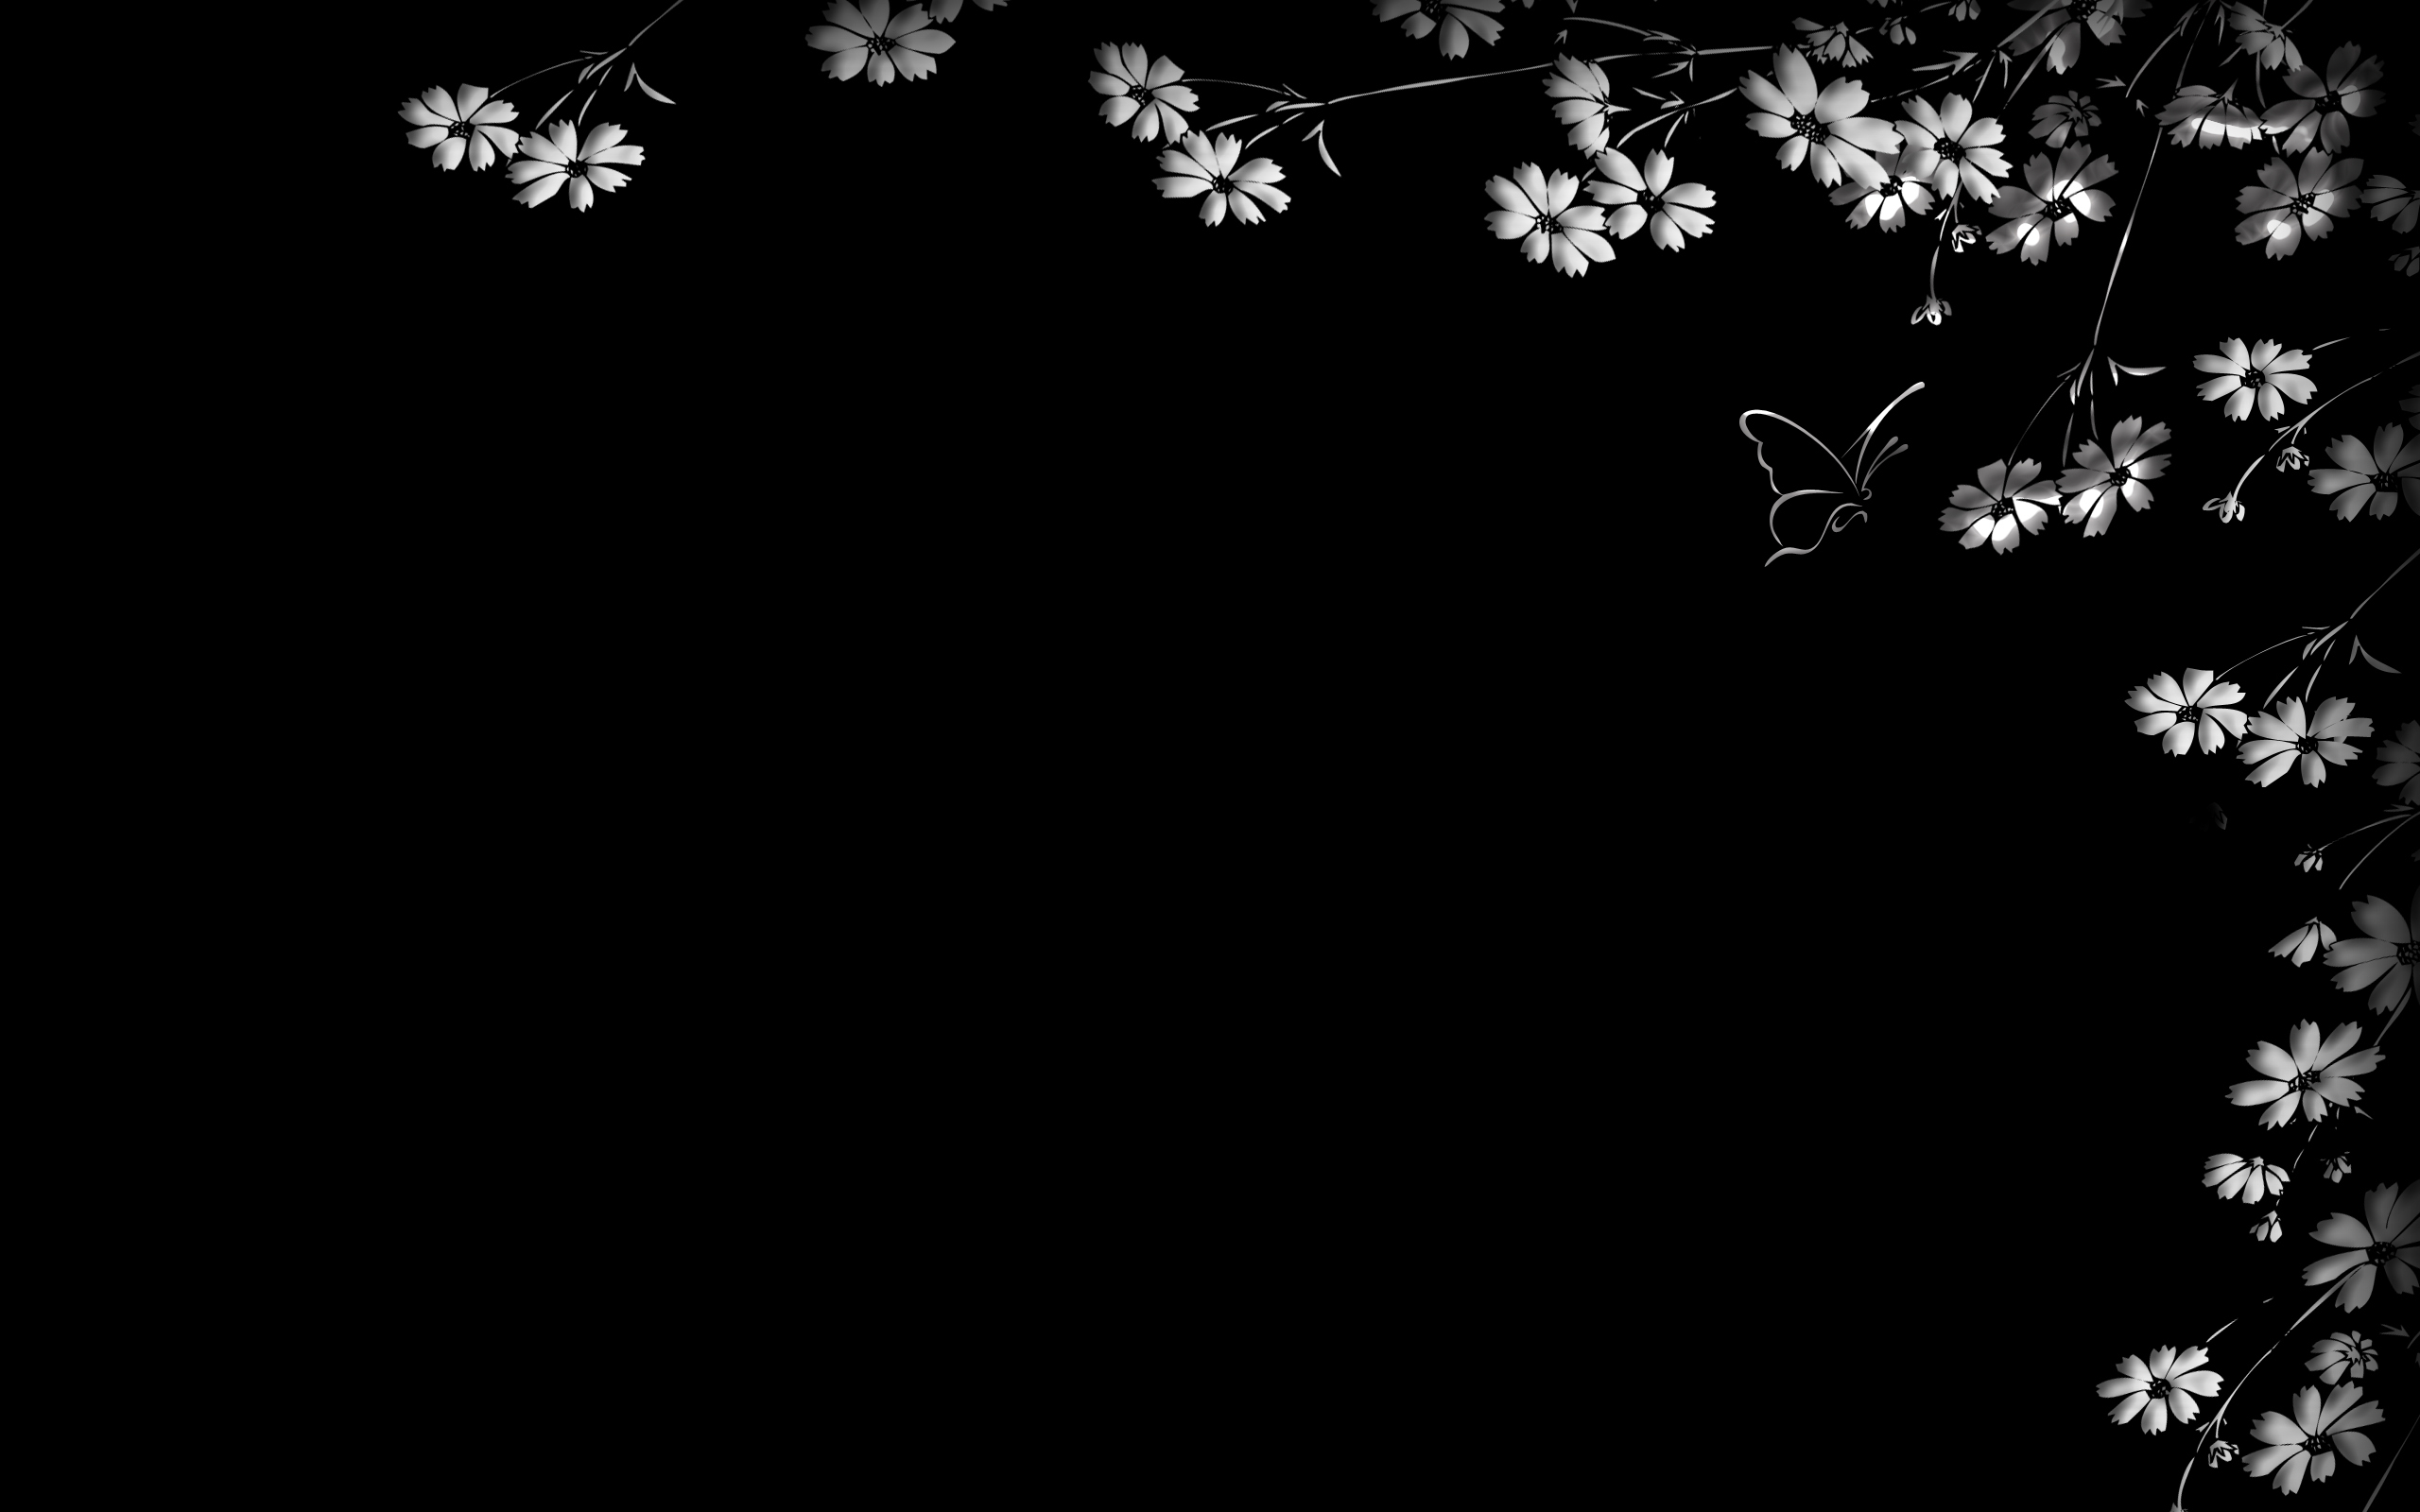 black flowers wallpaper 2015   Grasscloth Wallpaper 2560x1600